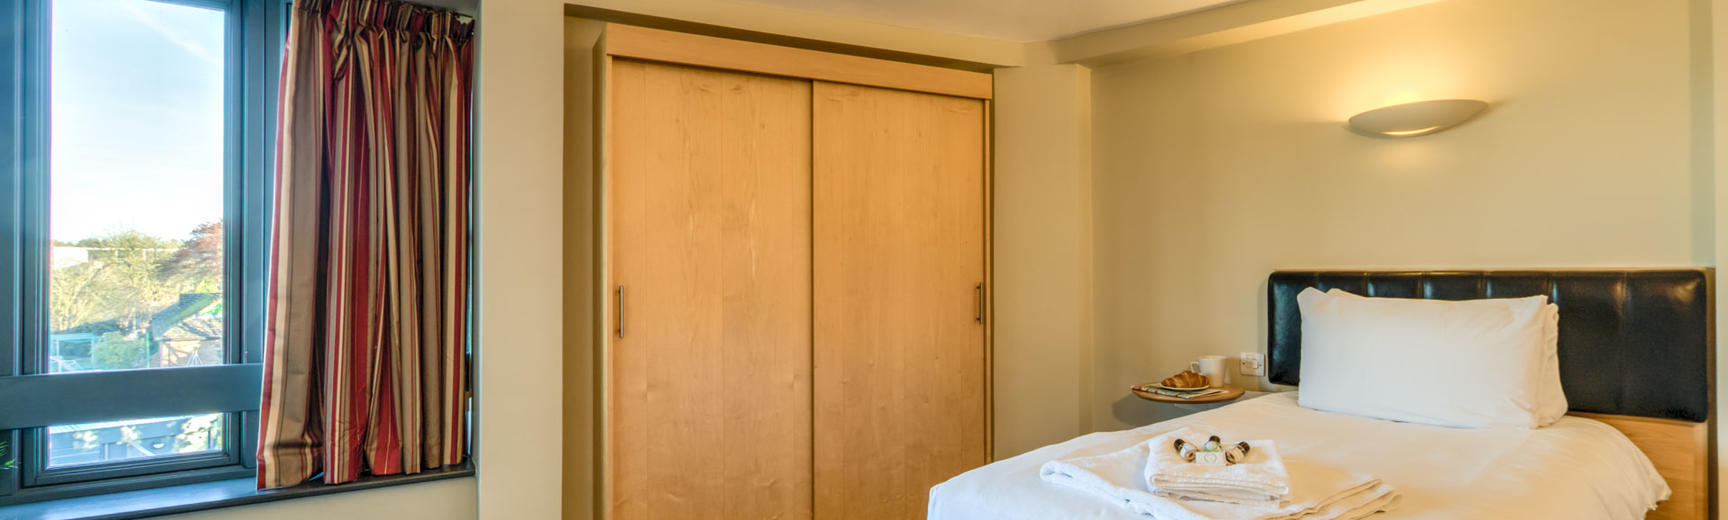 Photo of a hotel room with single bed, wardrobe and window